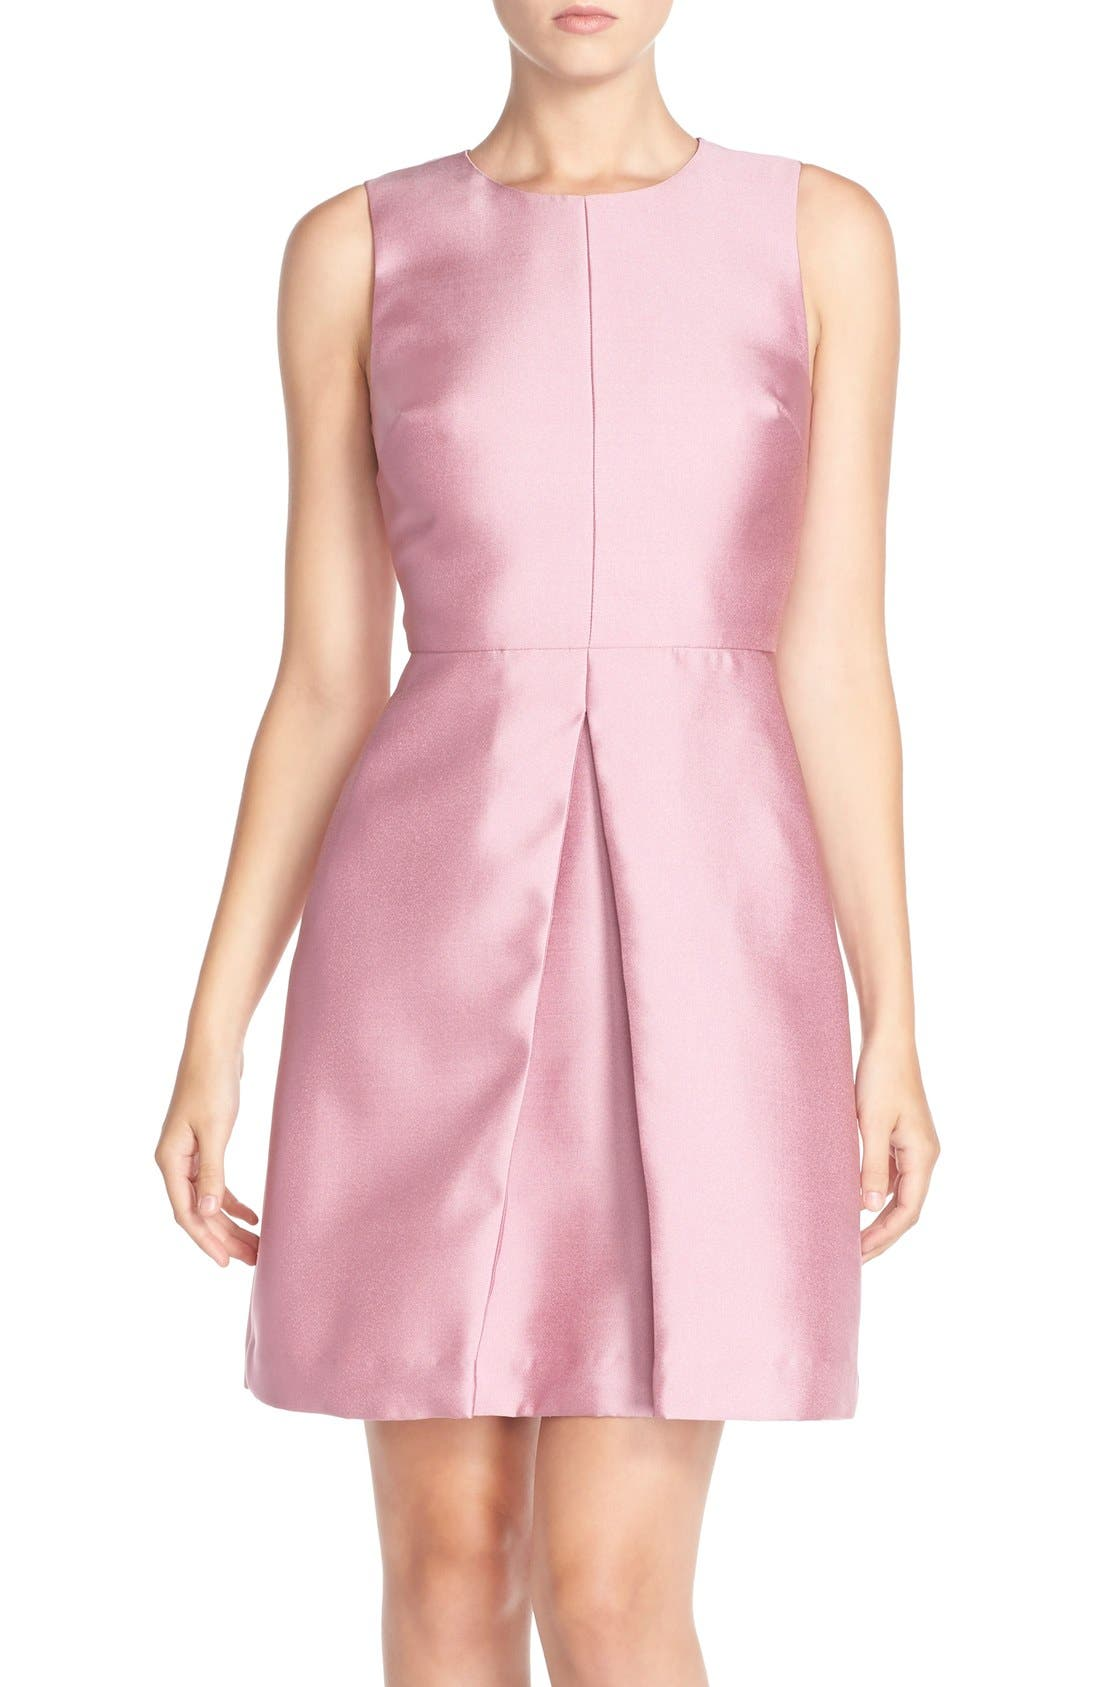 Main Image - ERIN erin fetherston'Sophie' Twill Fit & Flare Dress